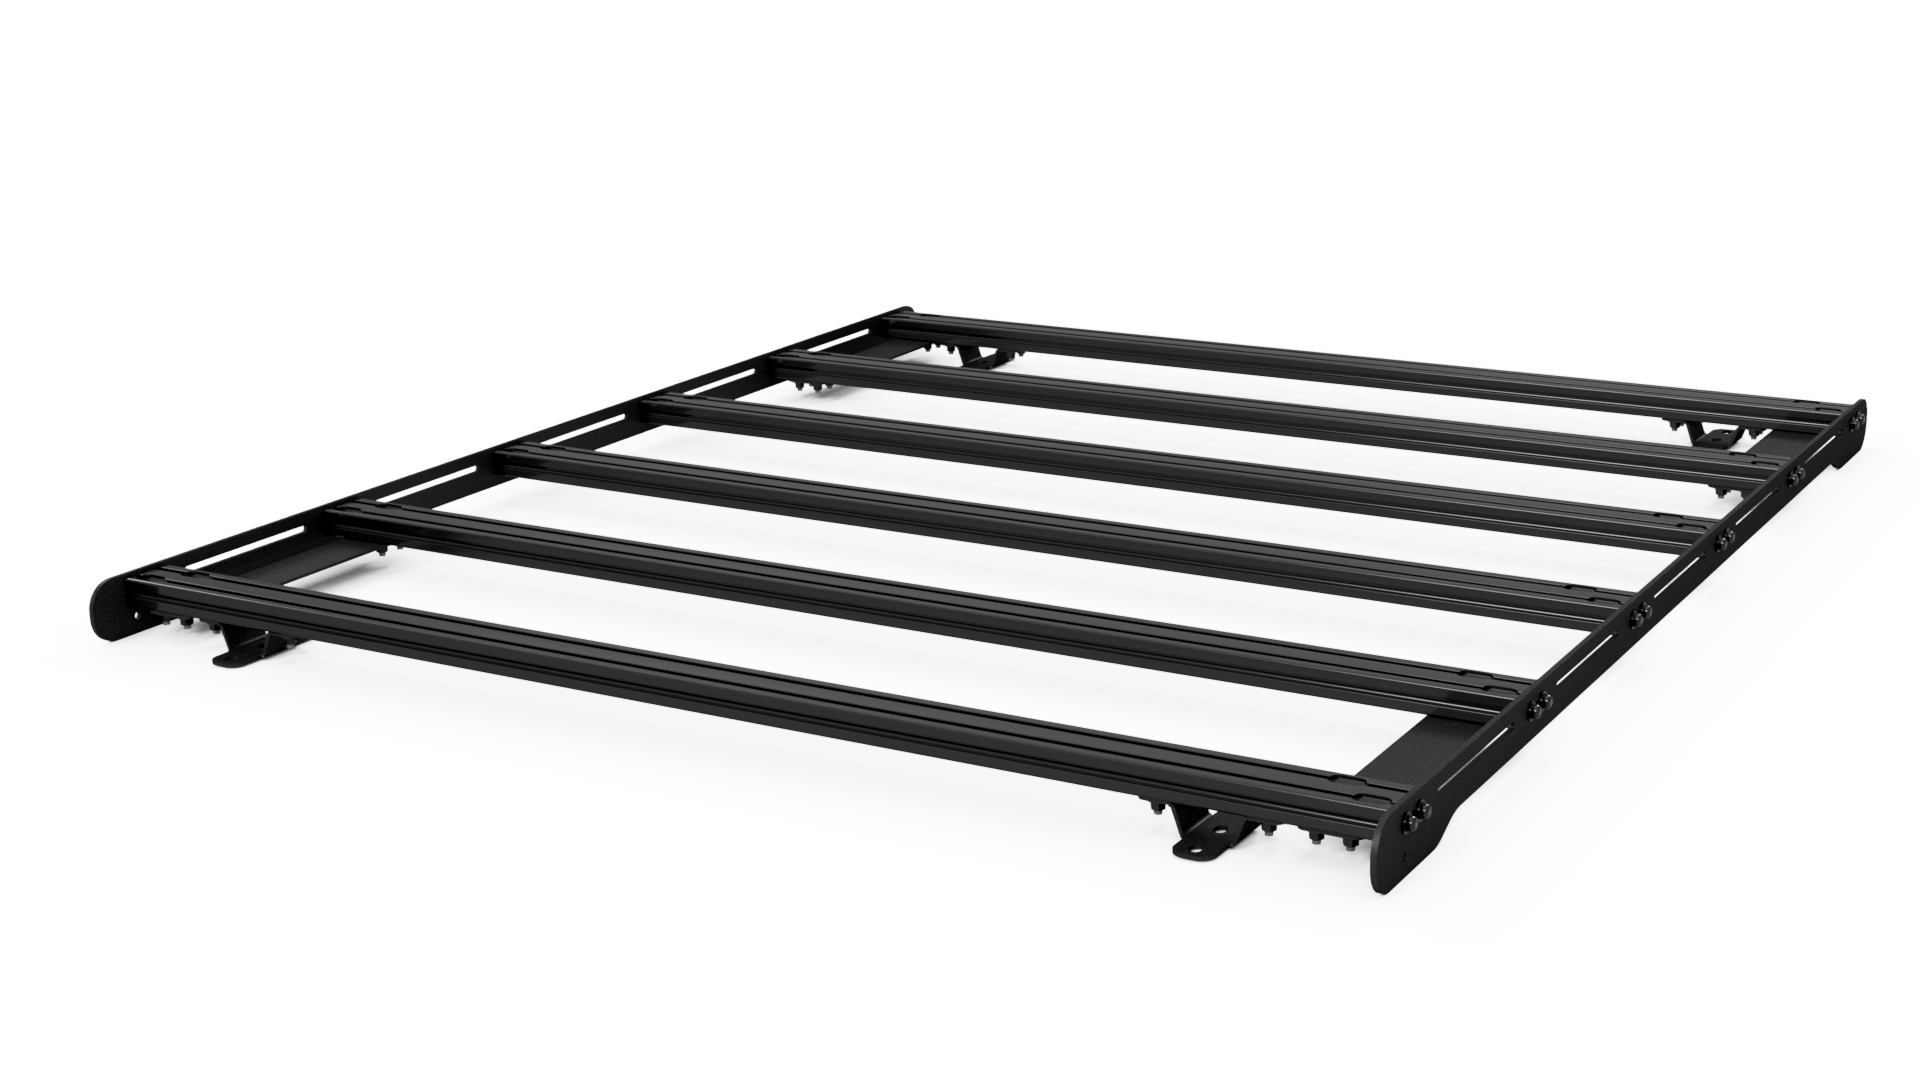 Prinsu Jeep Gladiator Universal Top Rack (5′ Bed Length)